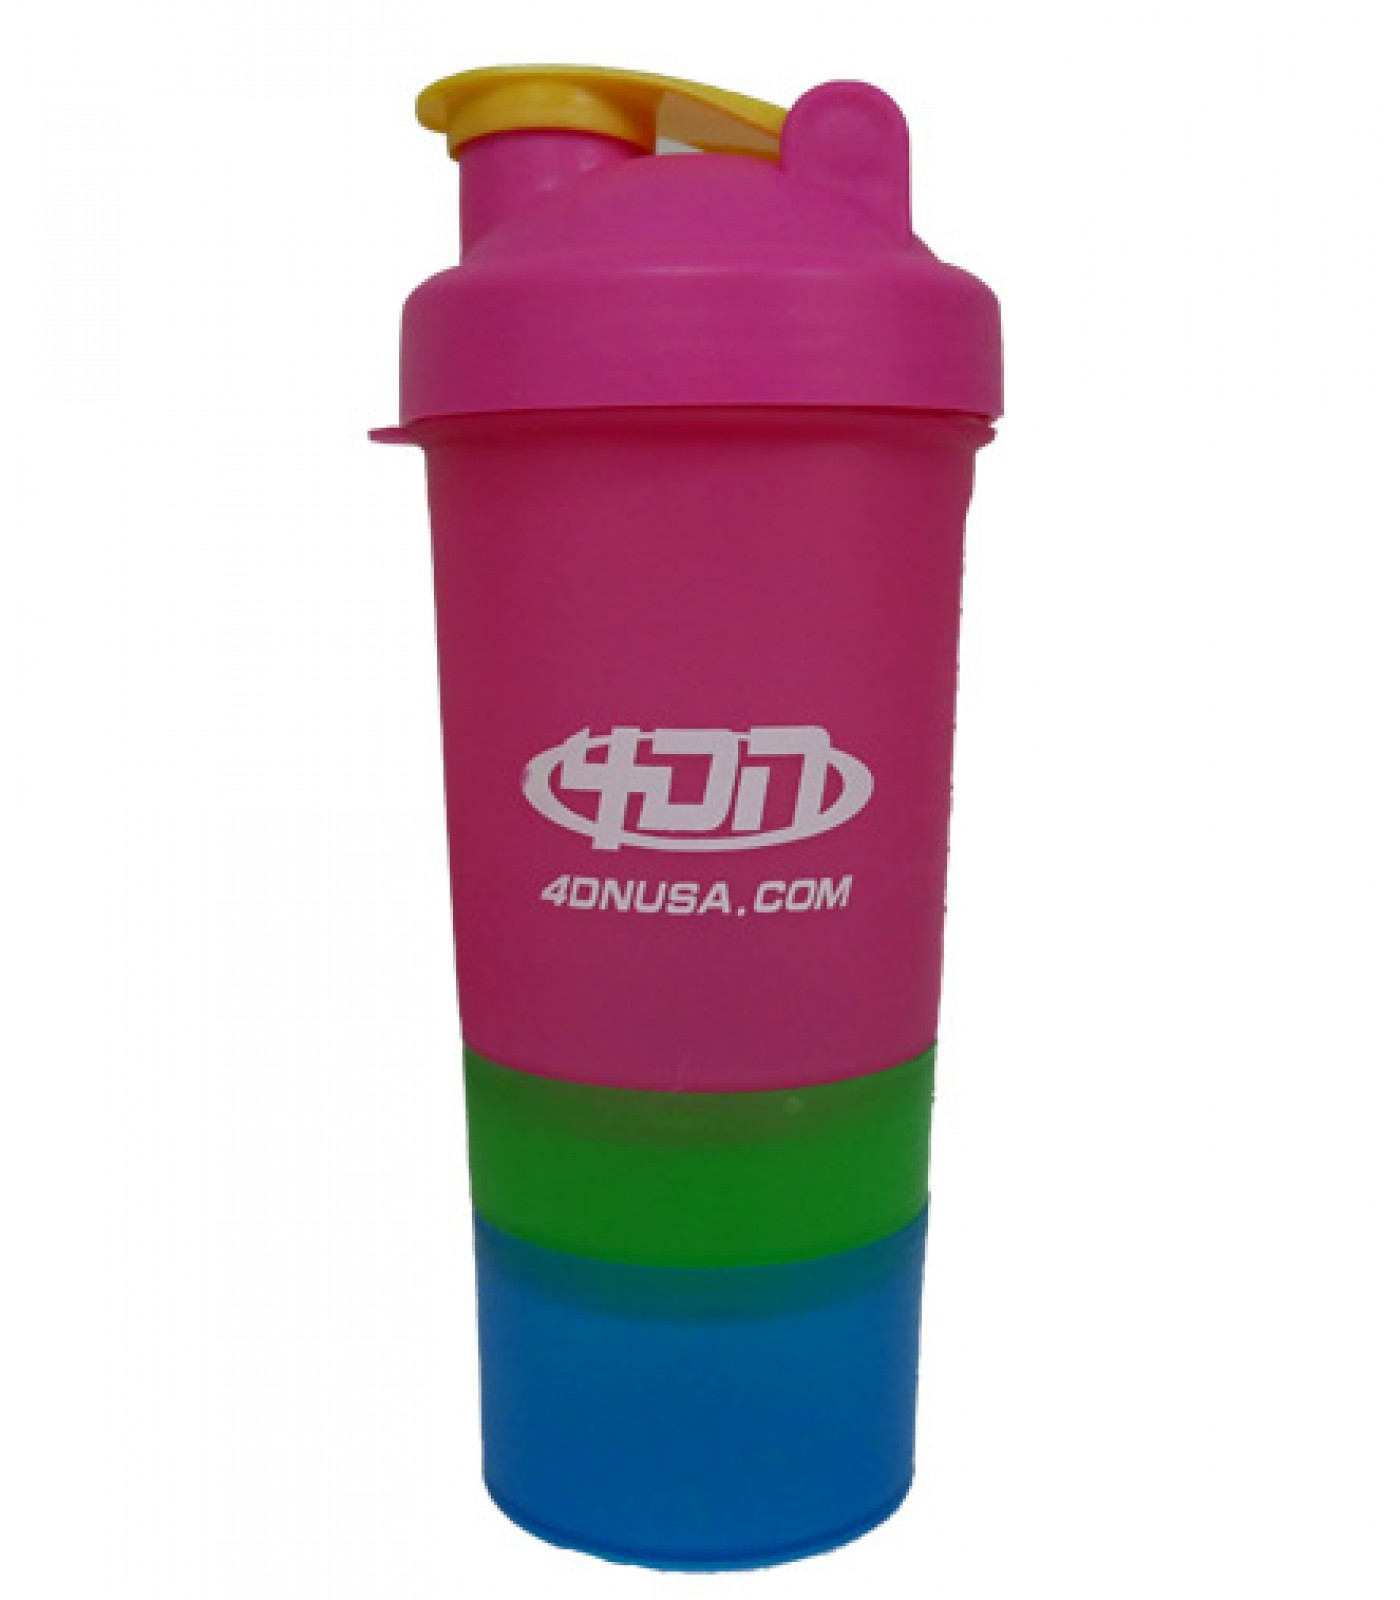 4DN Shaker Bottle Pink Green 400ml. - с отделения